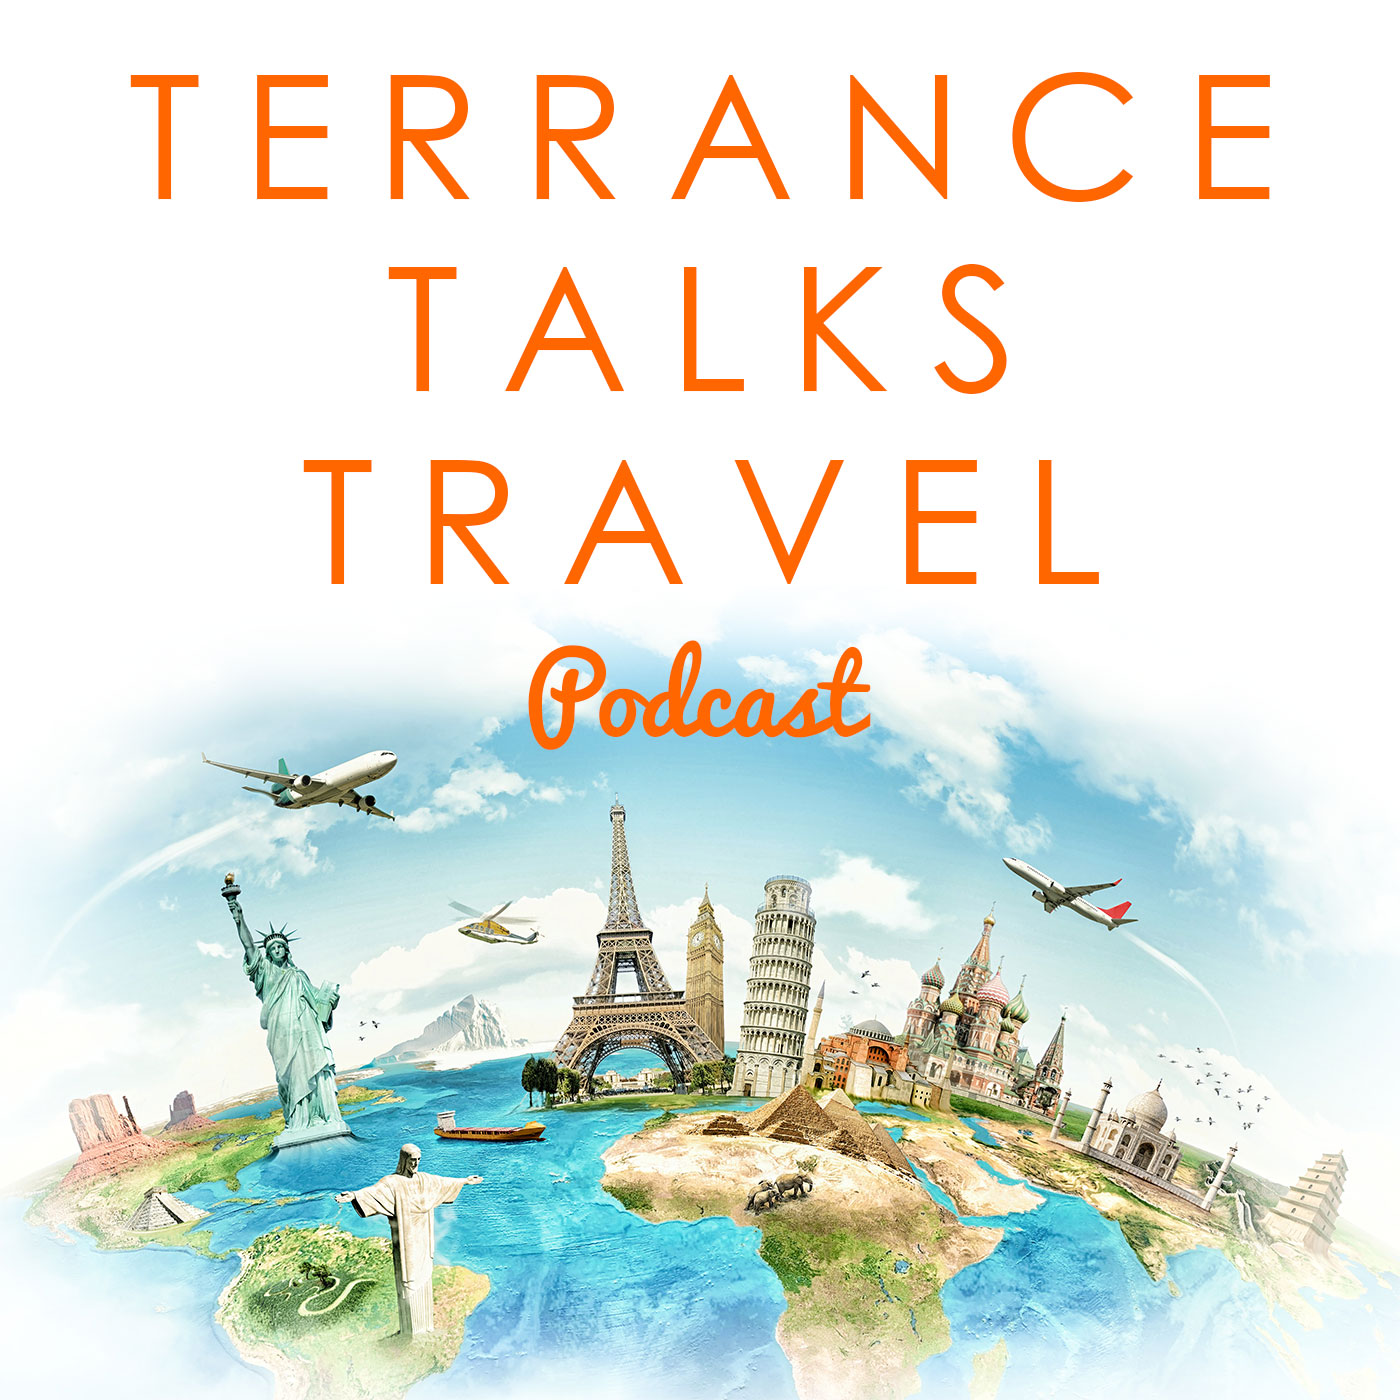 Terrance Talks Travel